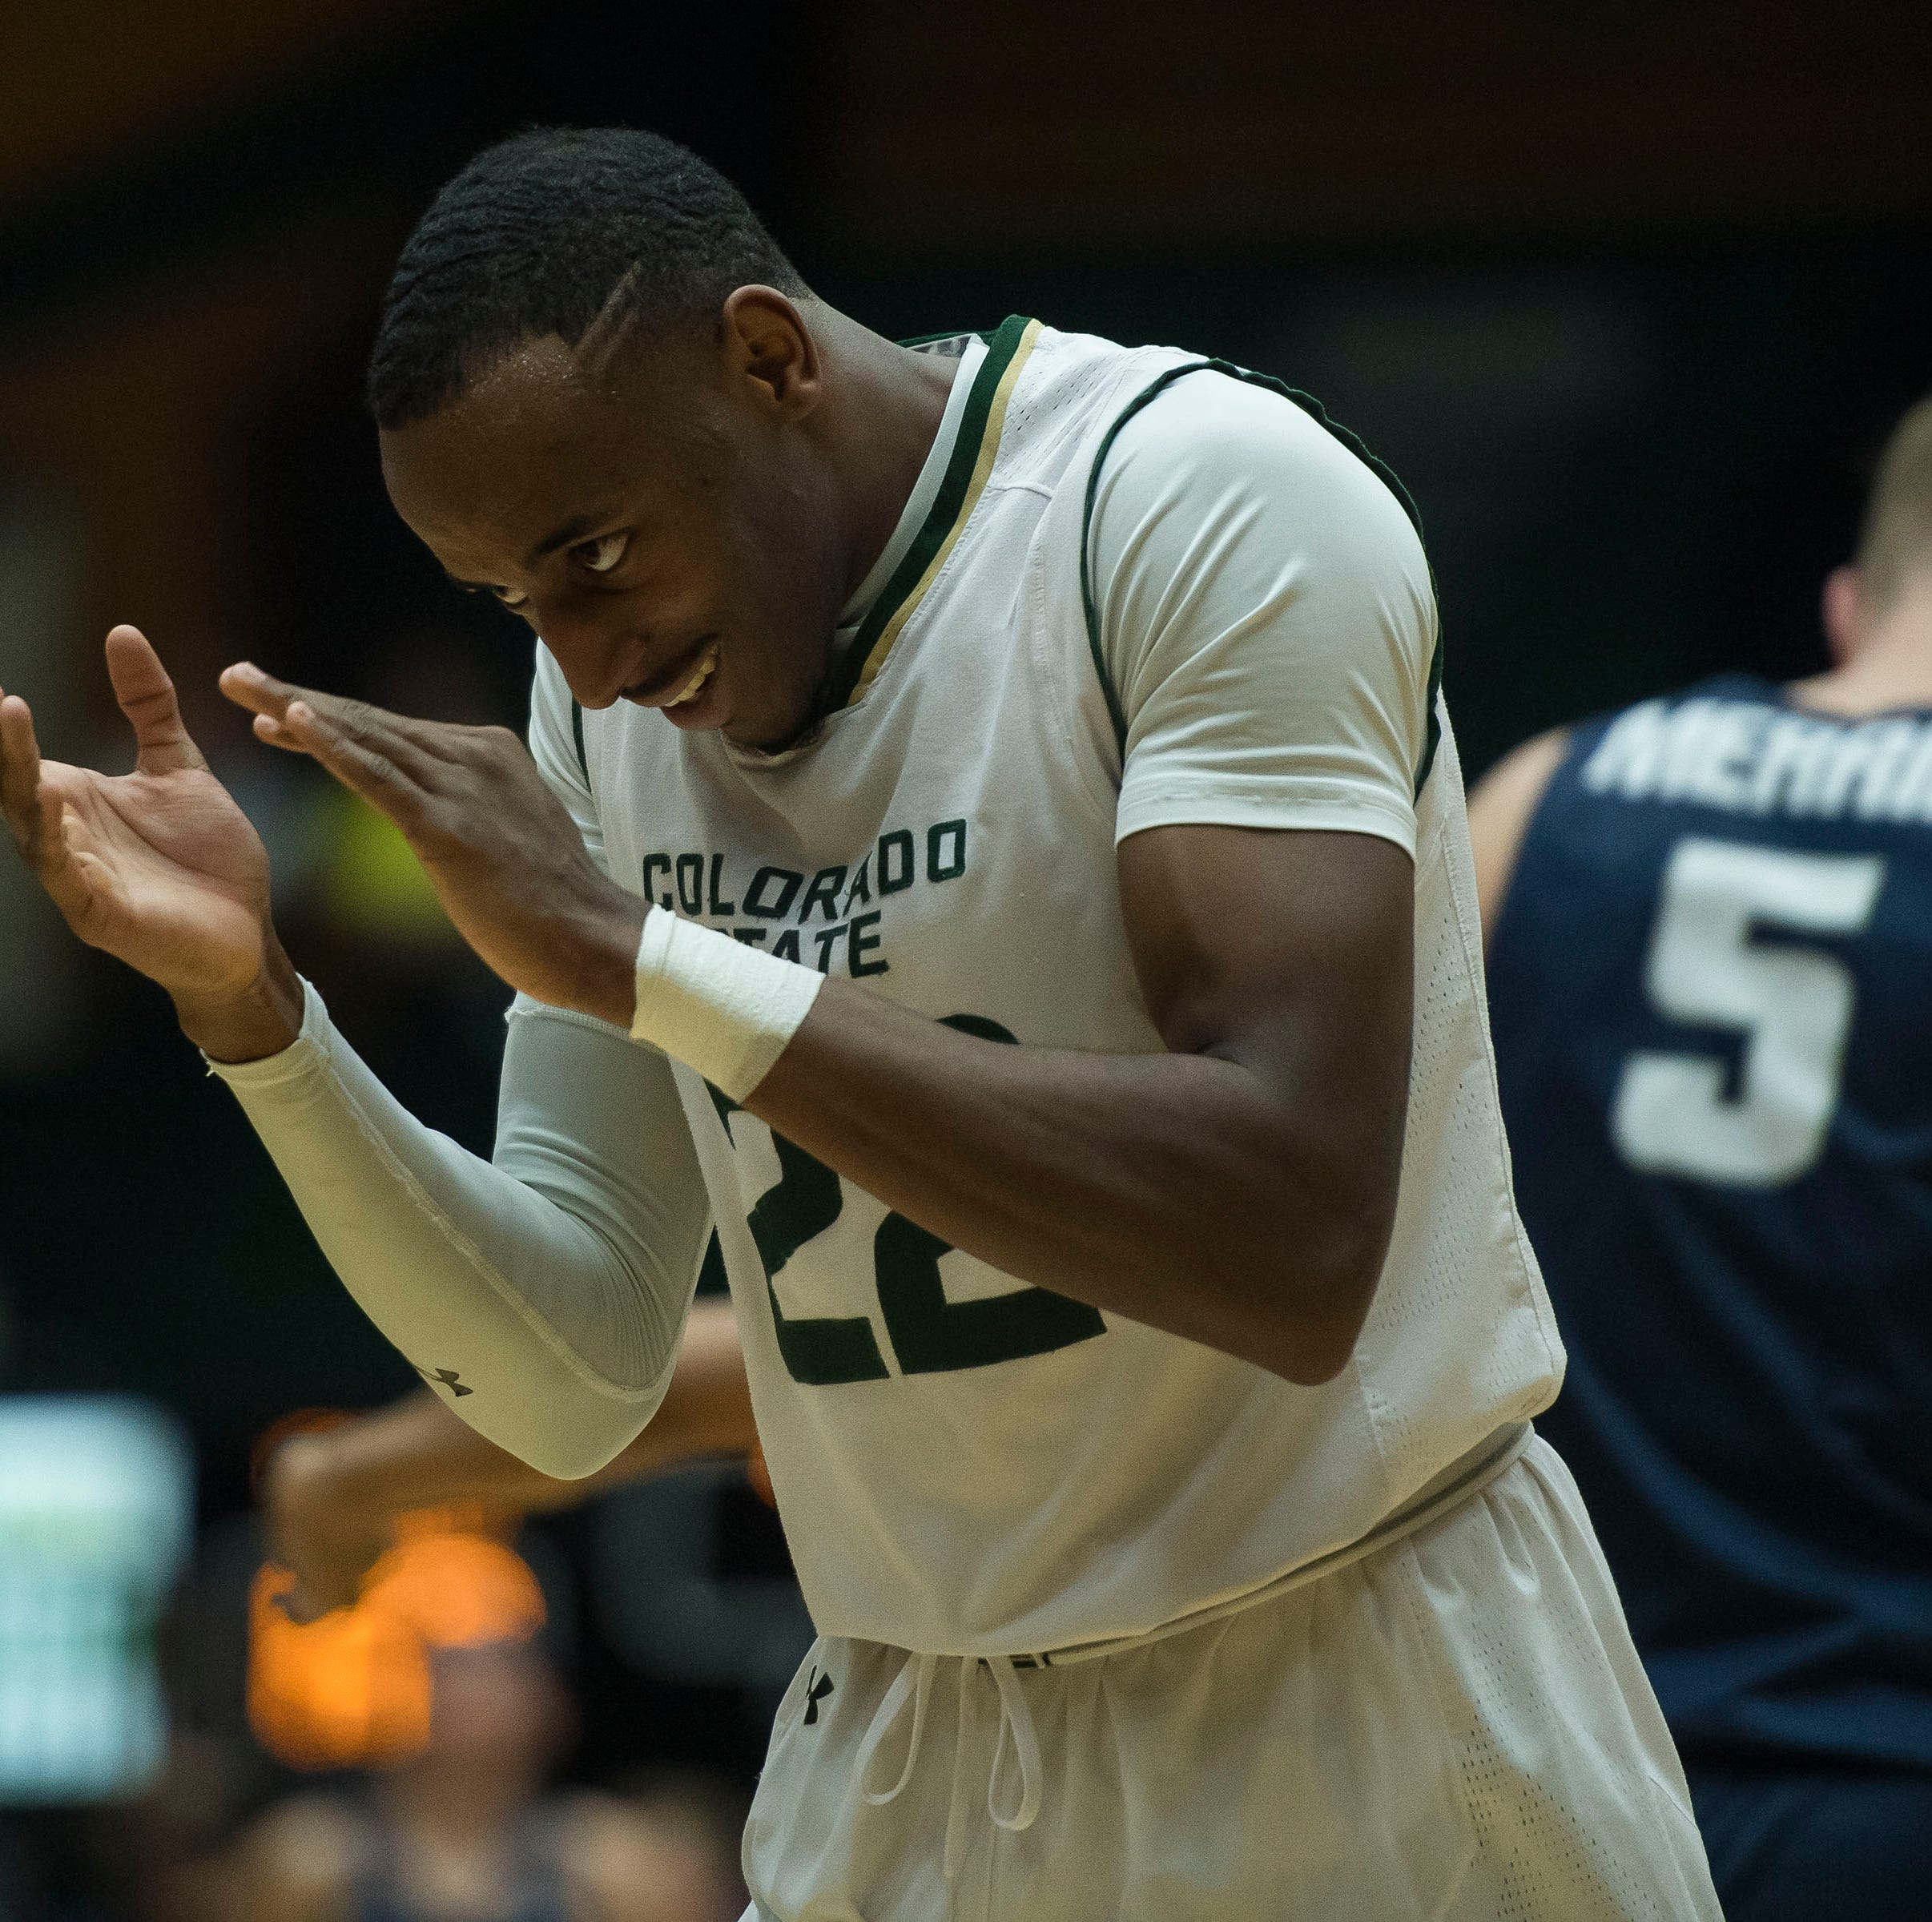 Former Colorado State basketball player J.D. Paige to play in 3-on-3 tournament with $100K prize